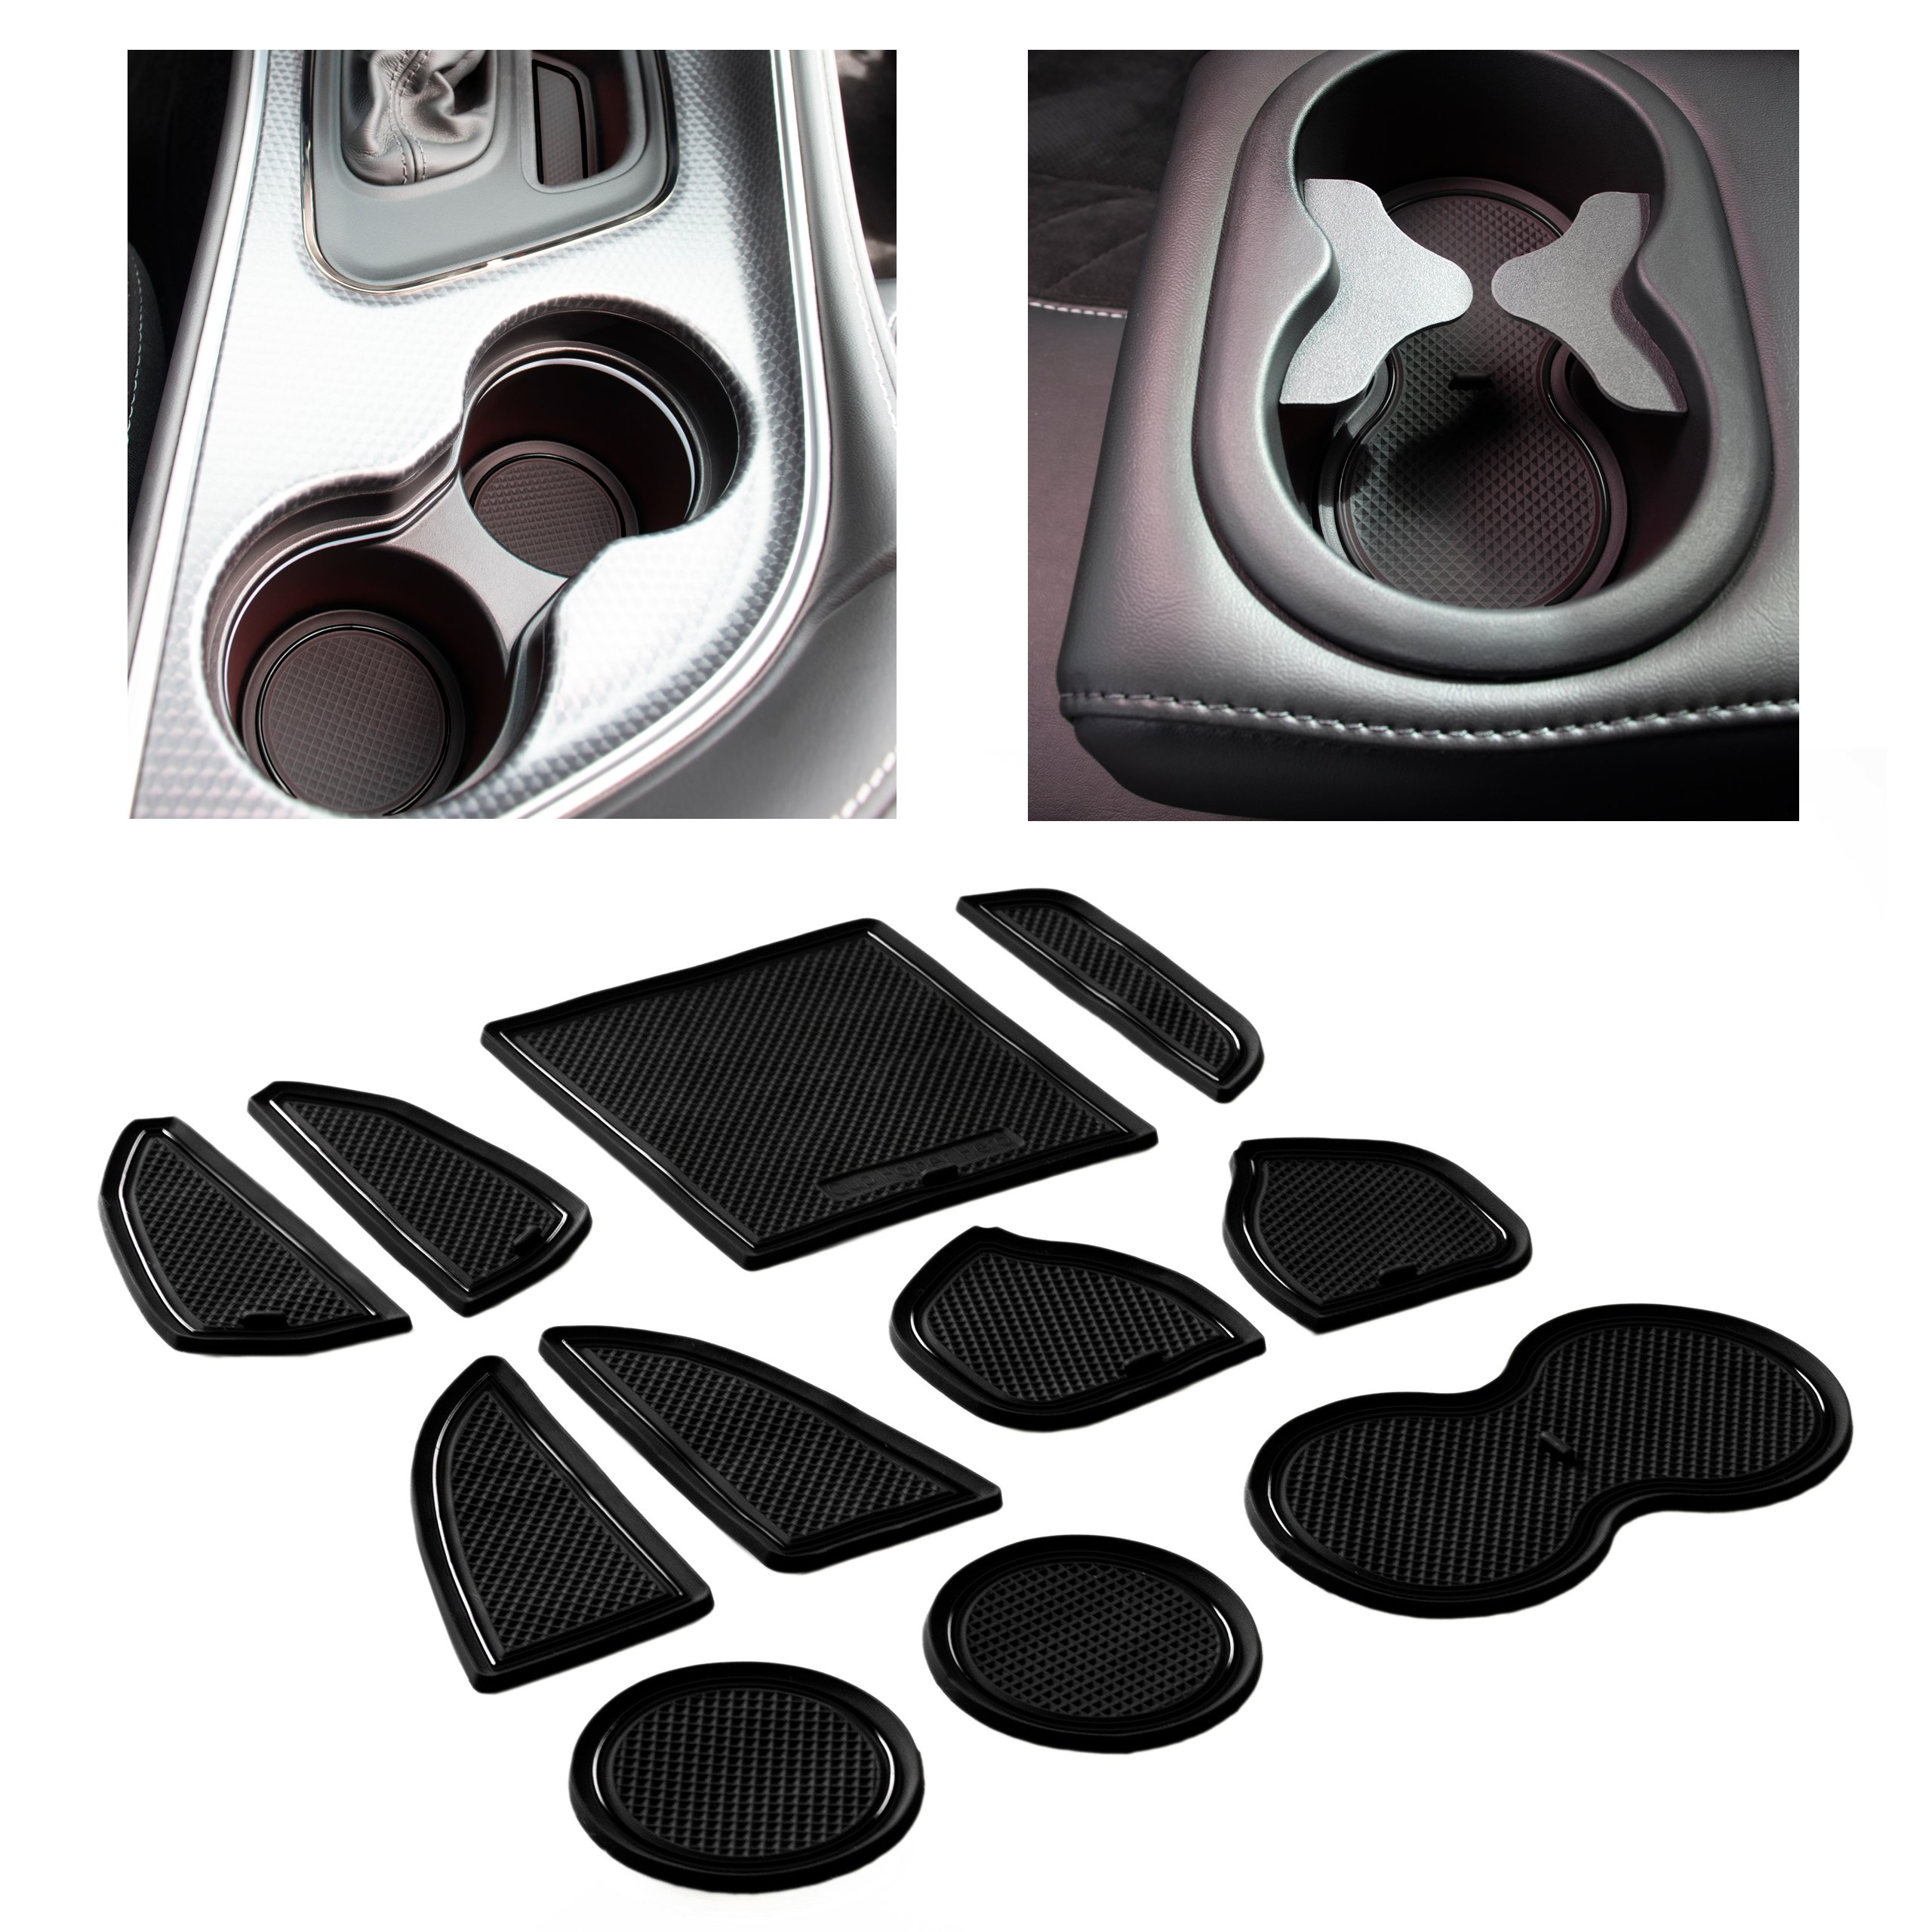 CupHolderHero-Dodge-Challenger-2015-2021-Liners-Accessories thumbnail 31